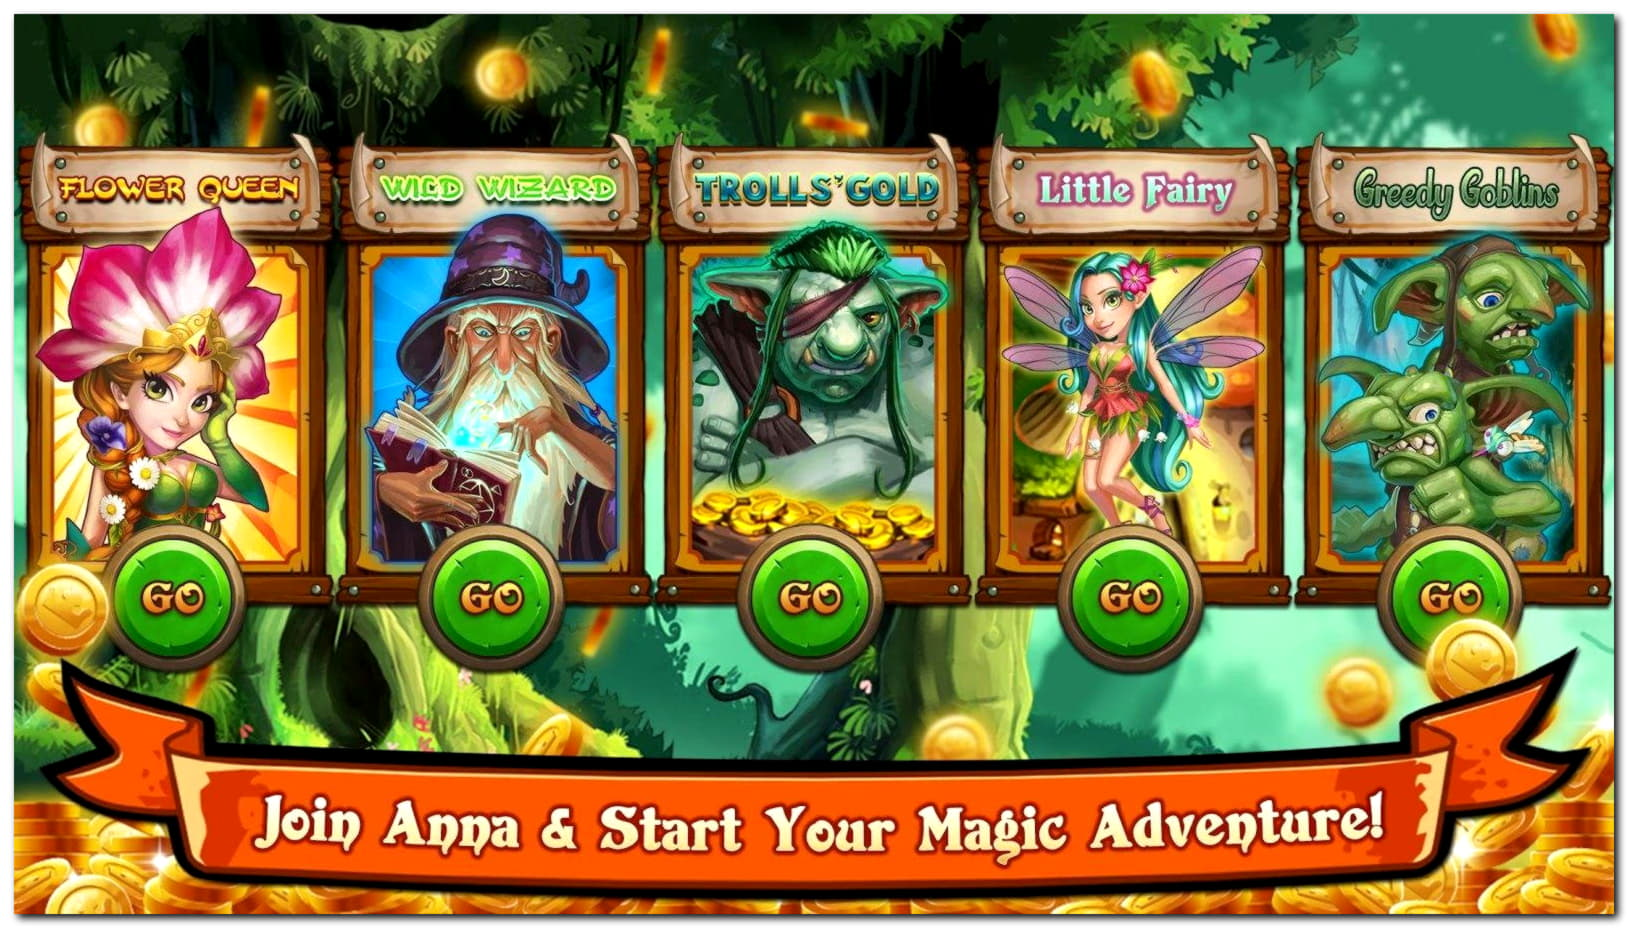 33 Free casino spins at Twin Casino